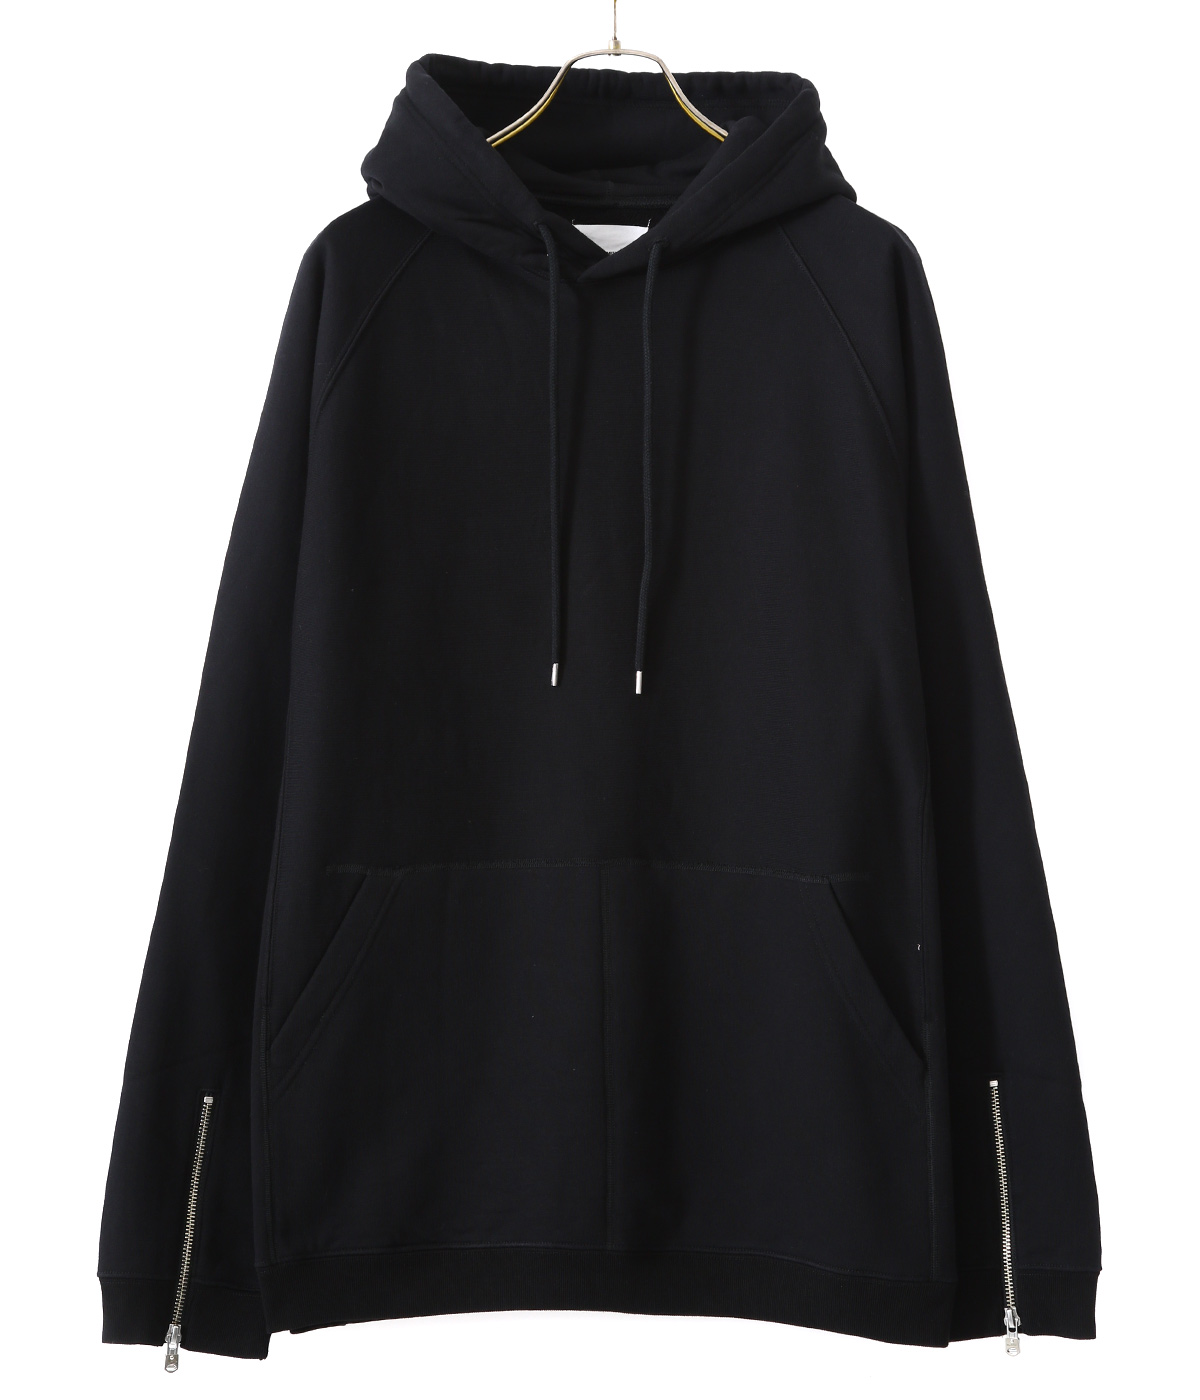 oversized pullover hoodie.